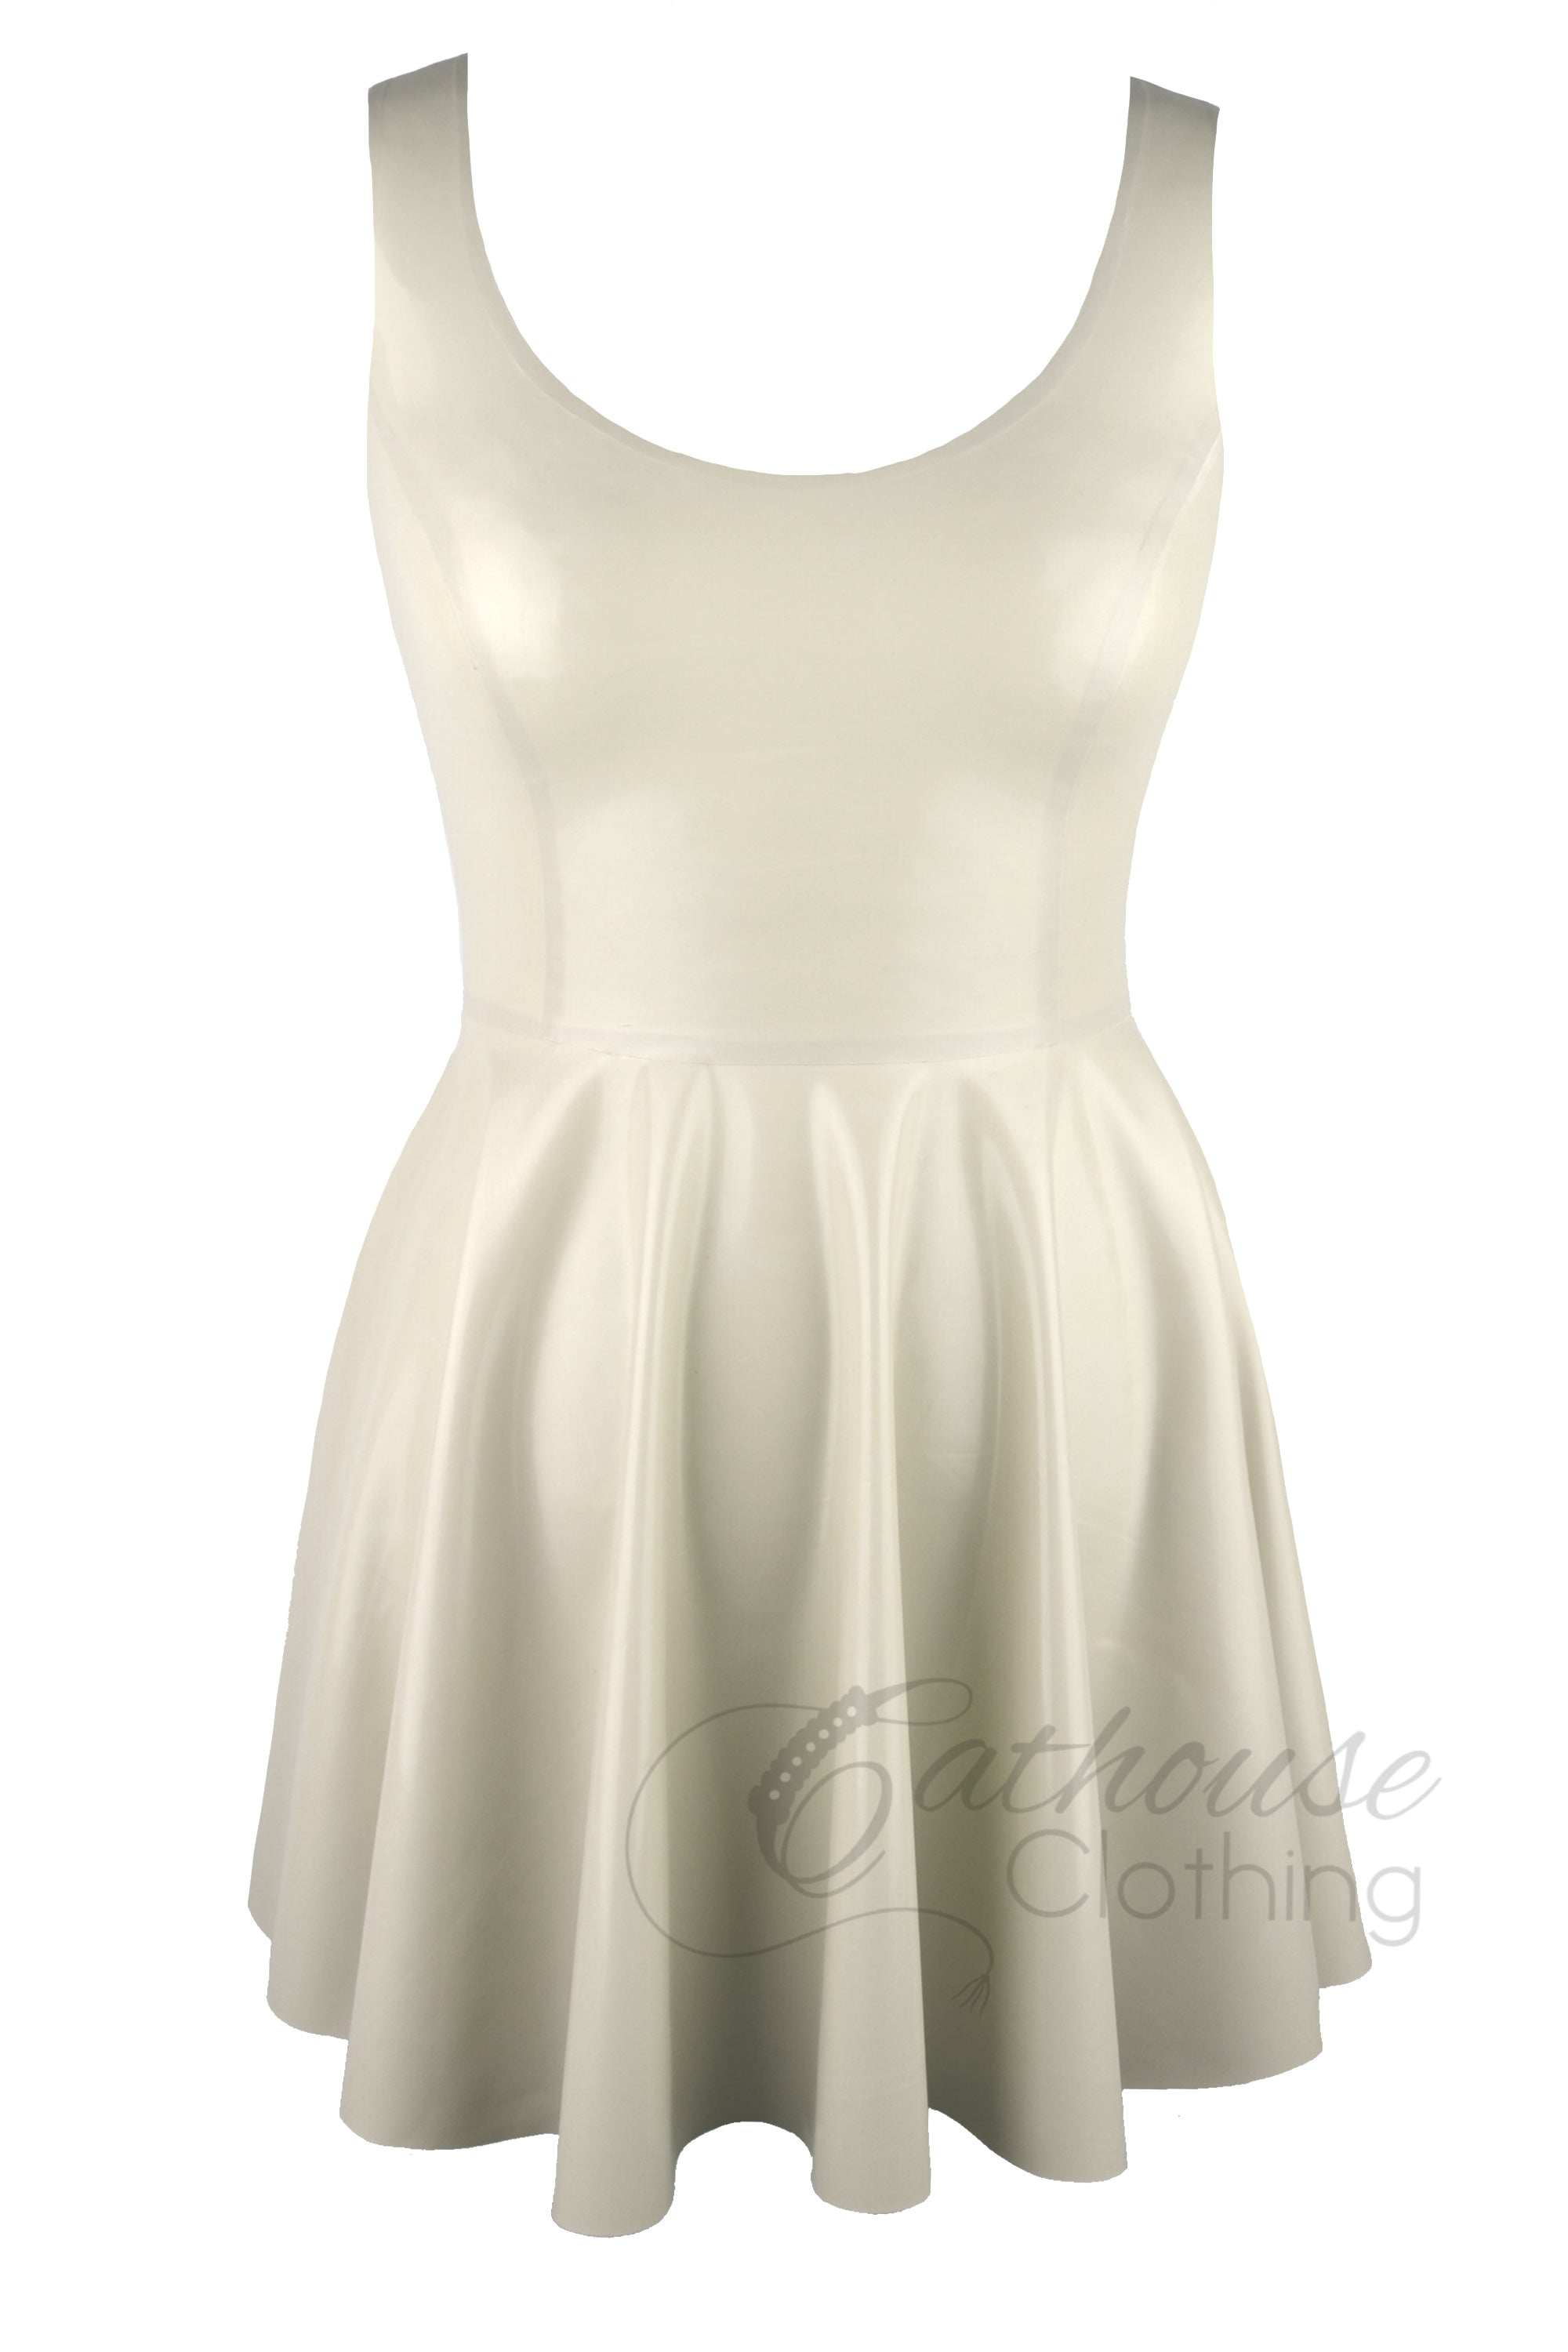 Lightweight skater dress